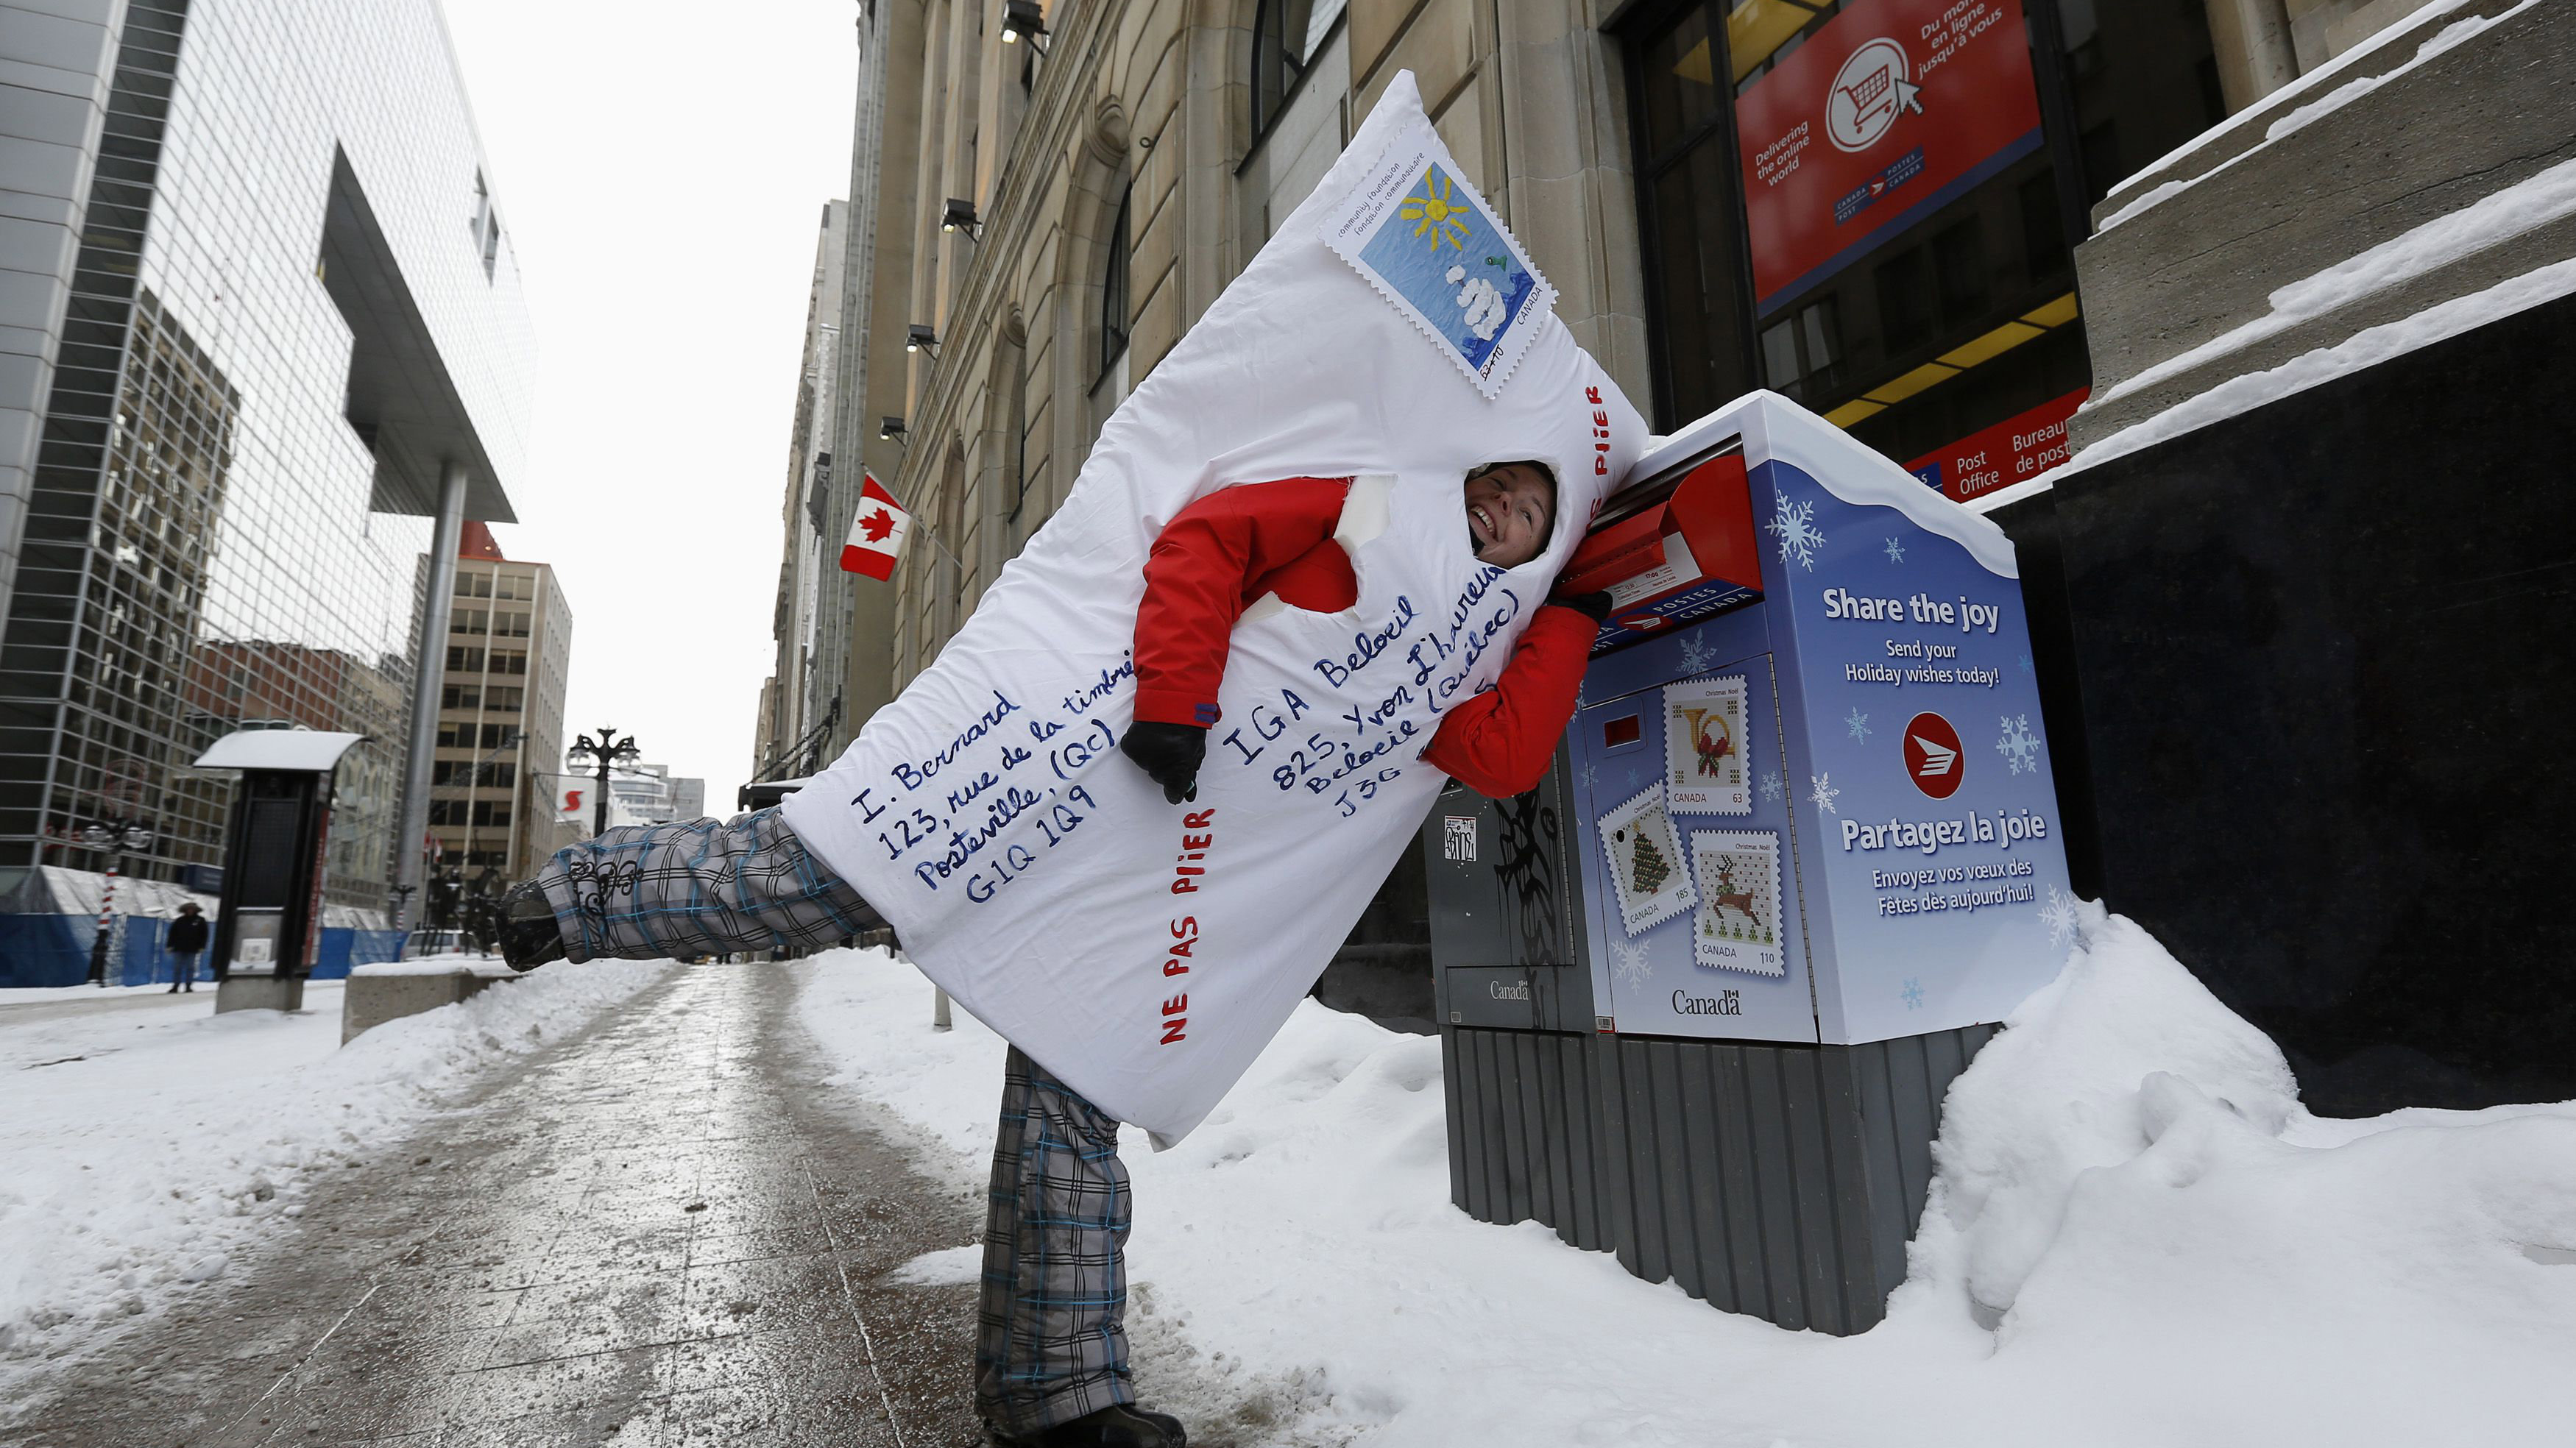 A demonstrator dressed as a mailed envelope jokes around with a mailbox during a protest against planned cuts to Canada Post in Ottawa January 26, 2014. Canada's postal service will phase out urban home delivery within five years and hike the cost of postage stamps to try to stem soaring losses, the post office announced last month. REUTERS/Chris Wattie